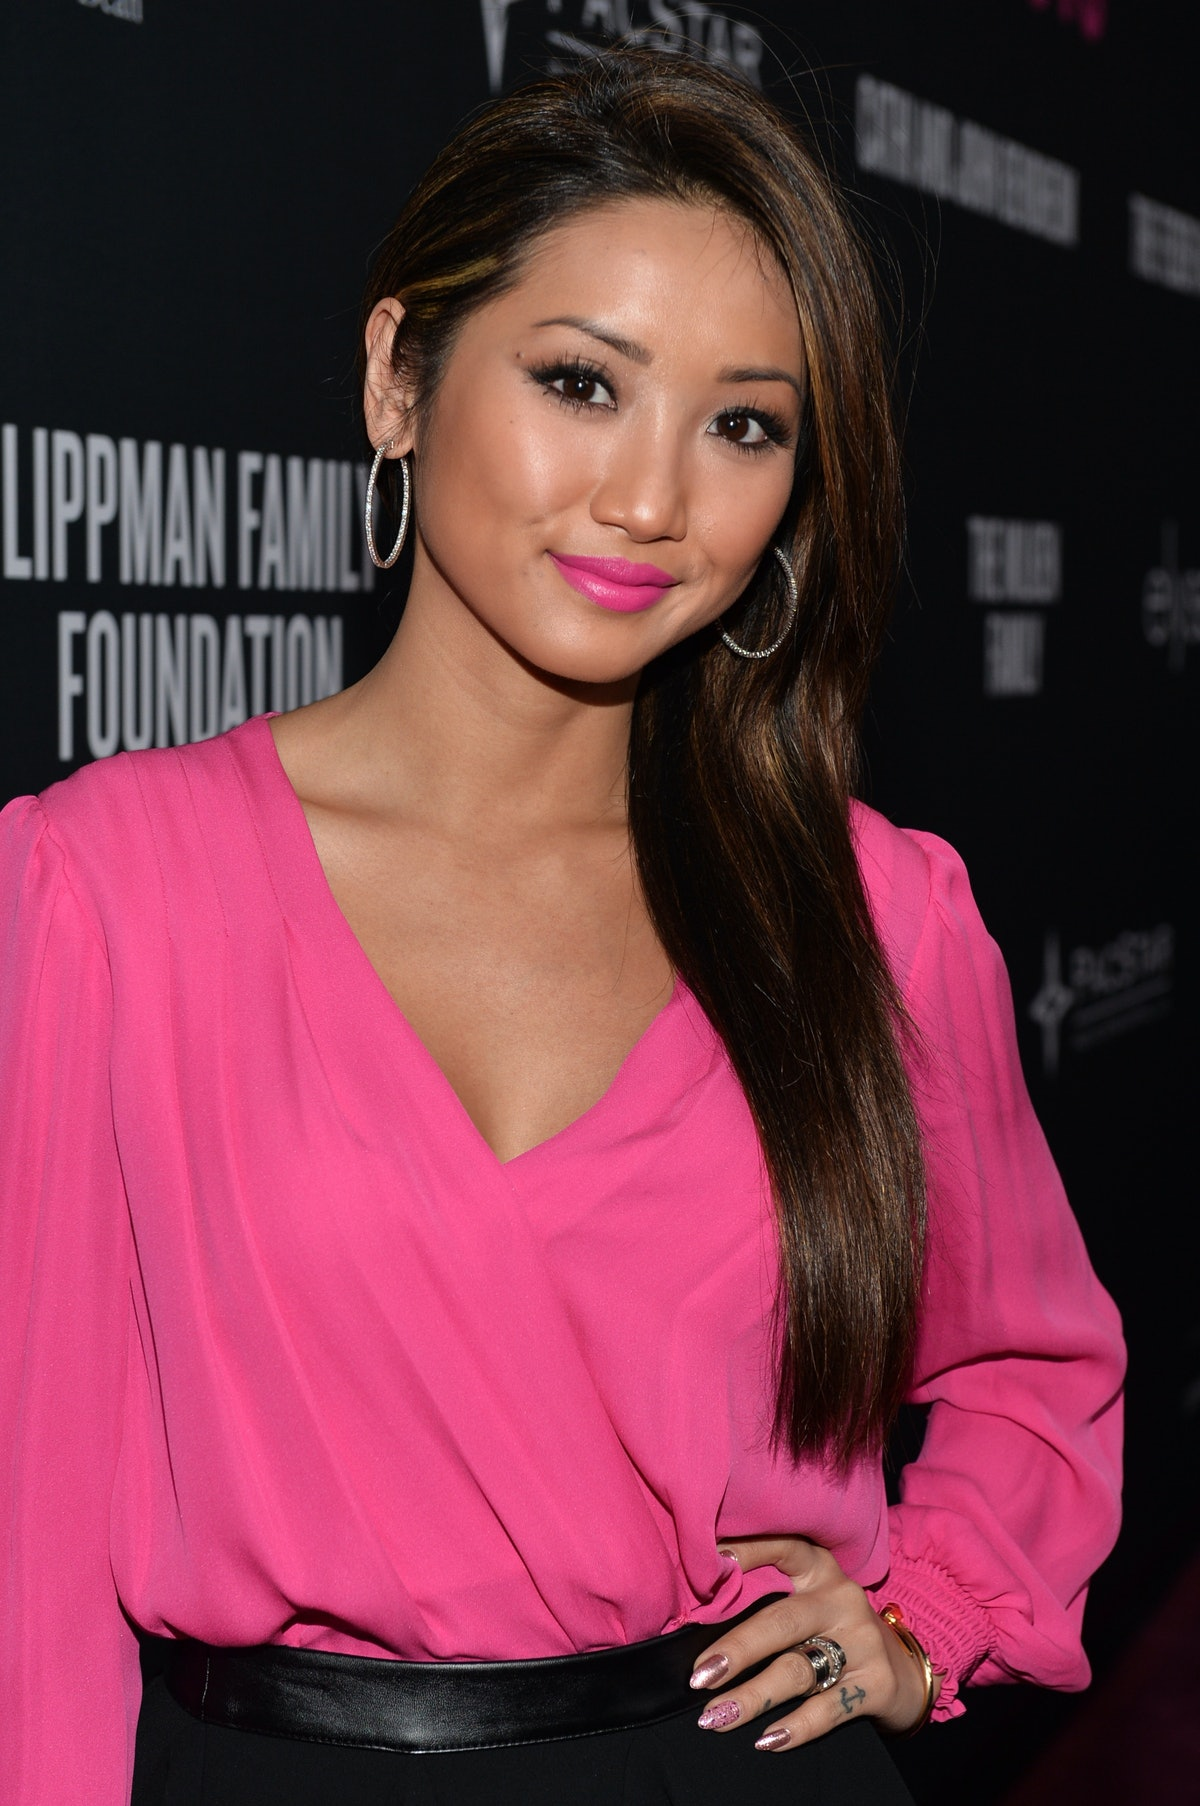 Is Brenda Song Dating Anyone? Here's What We Know About Her Relationship Status